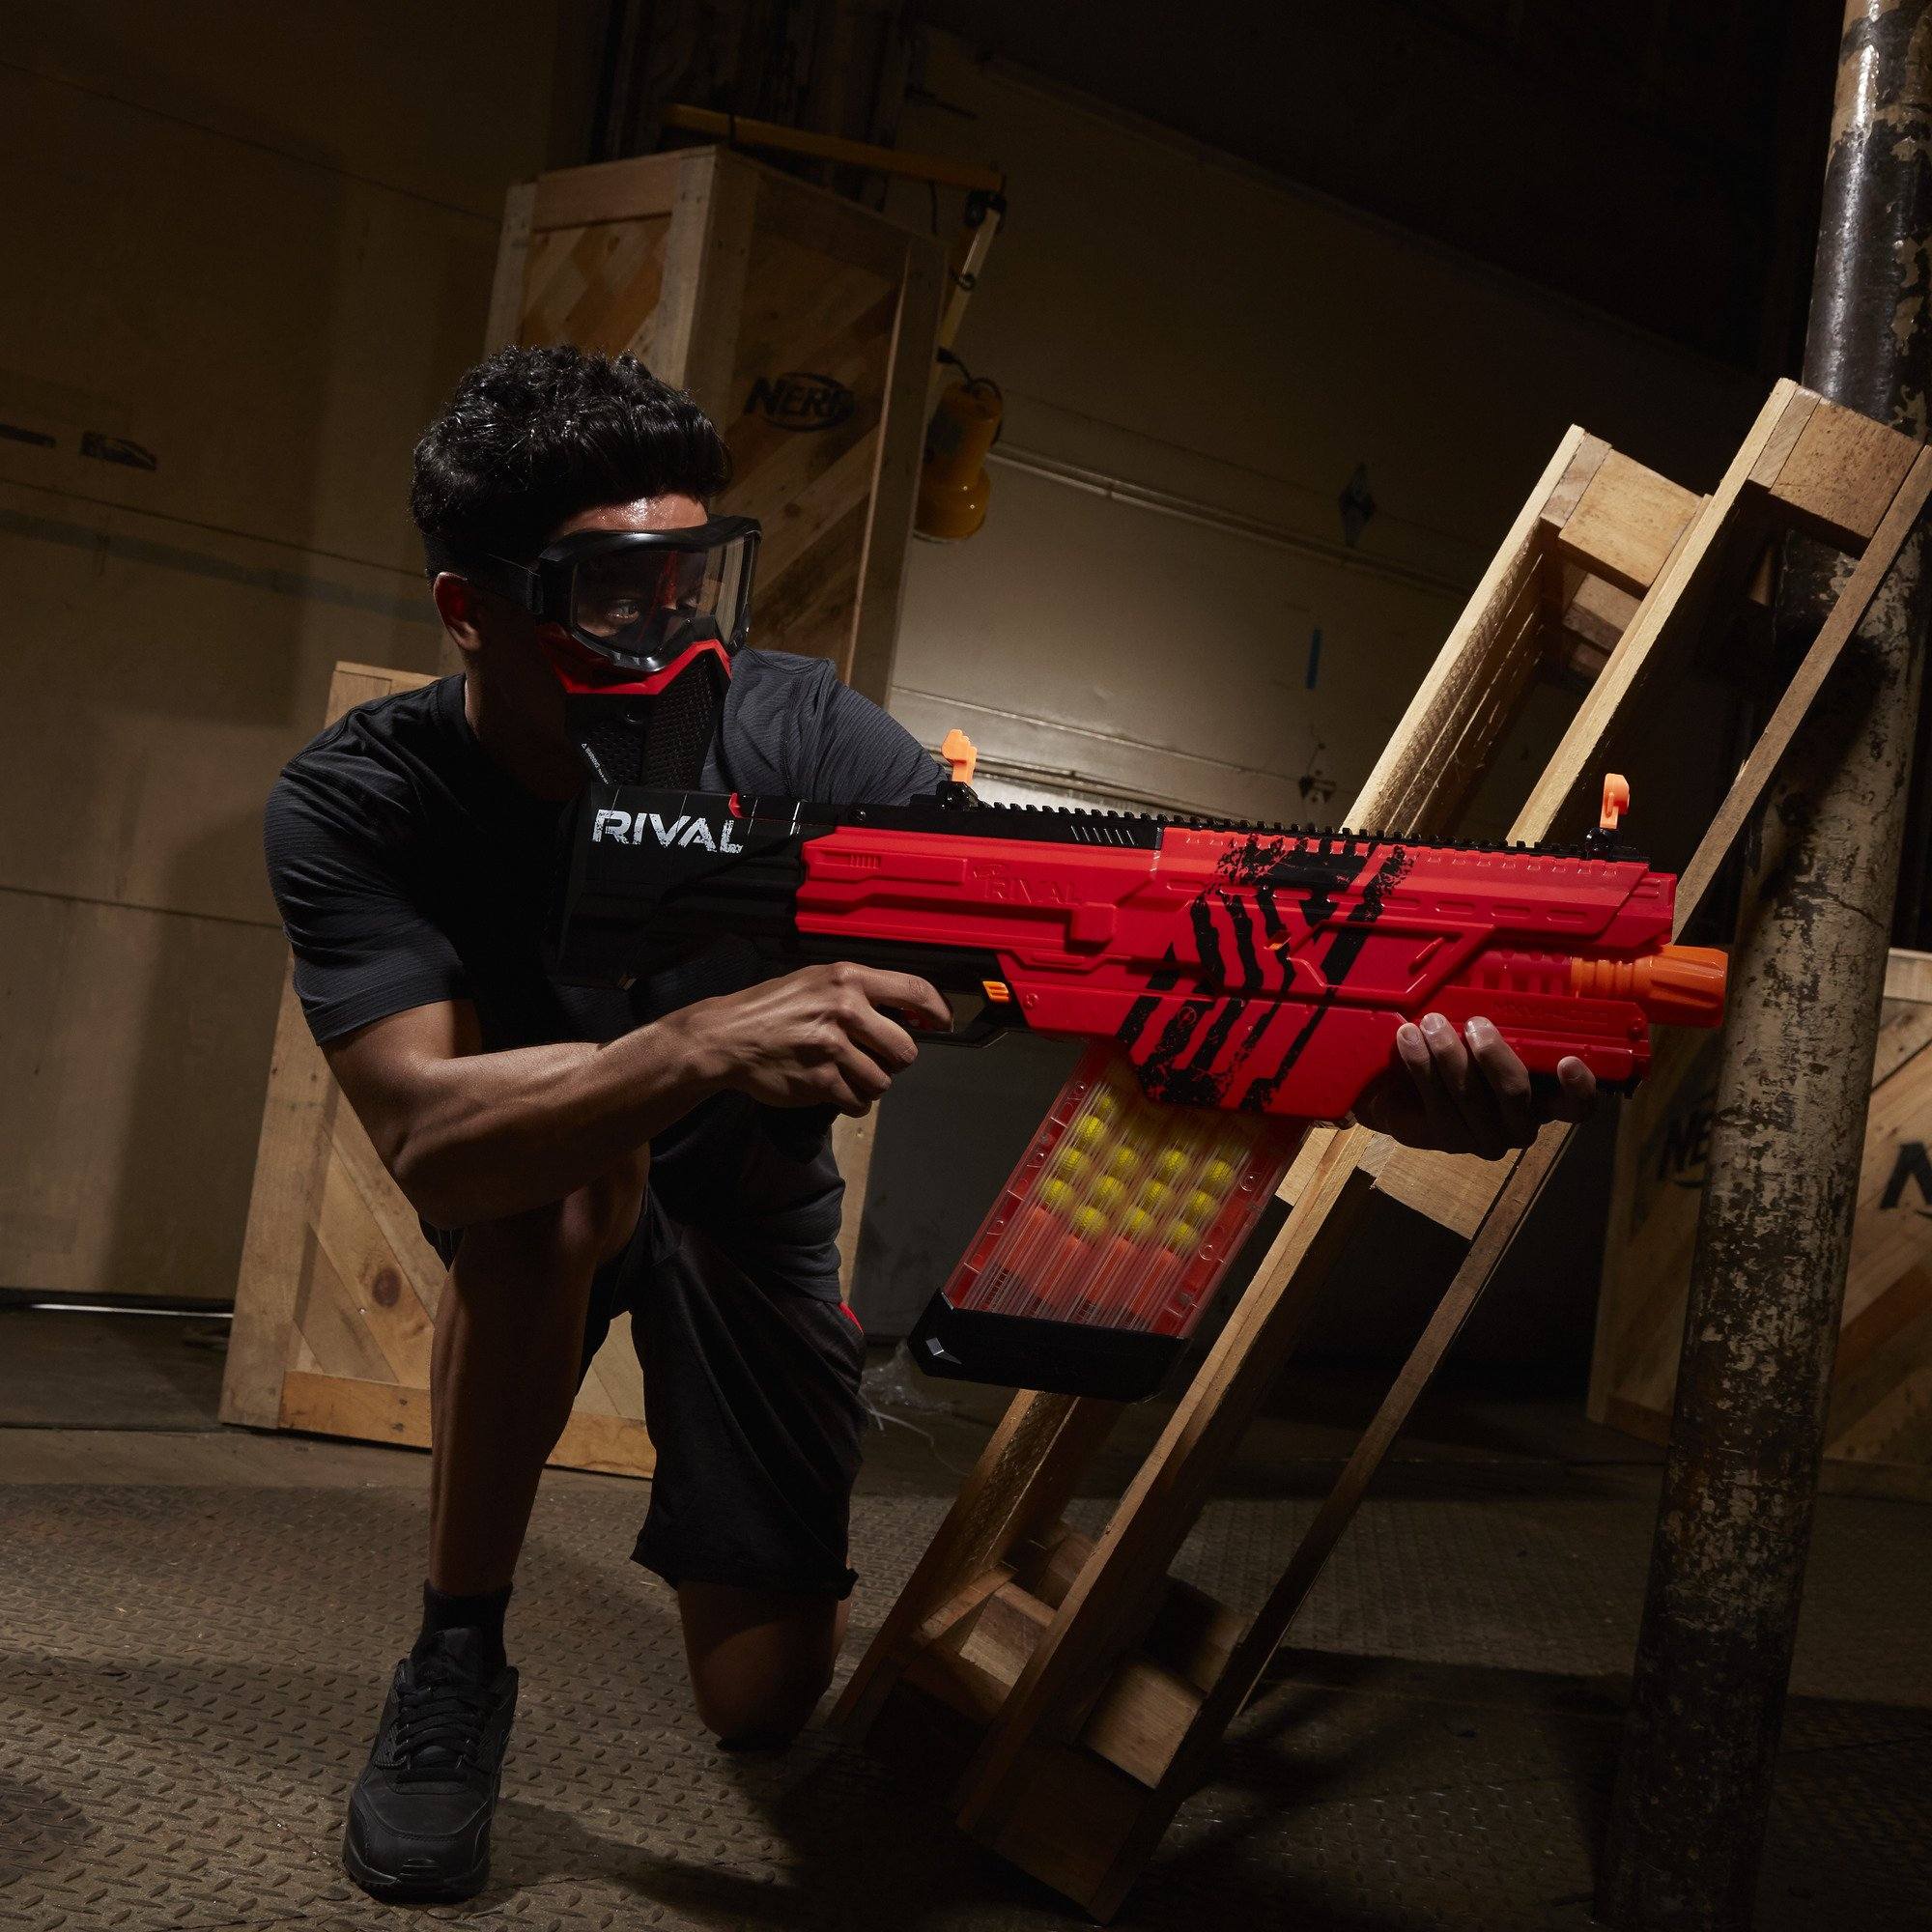 Nerf Rival Khaos MXVI-4000 Blaster (Red) by NERF (Image #13)